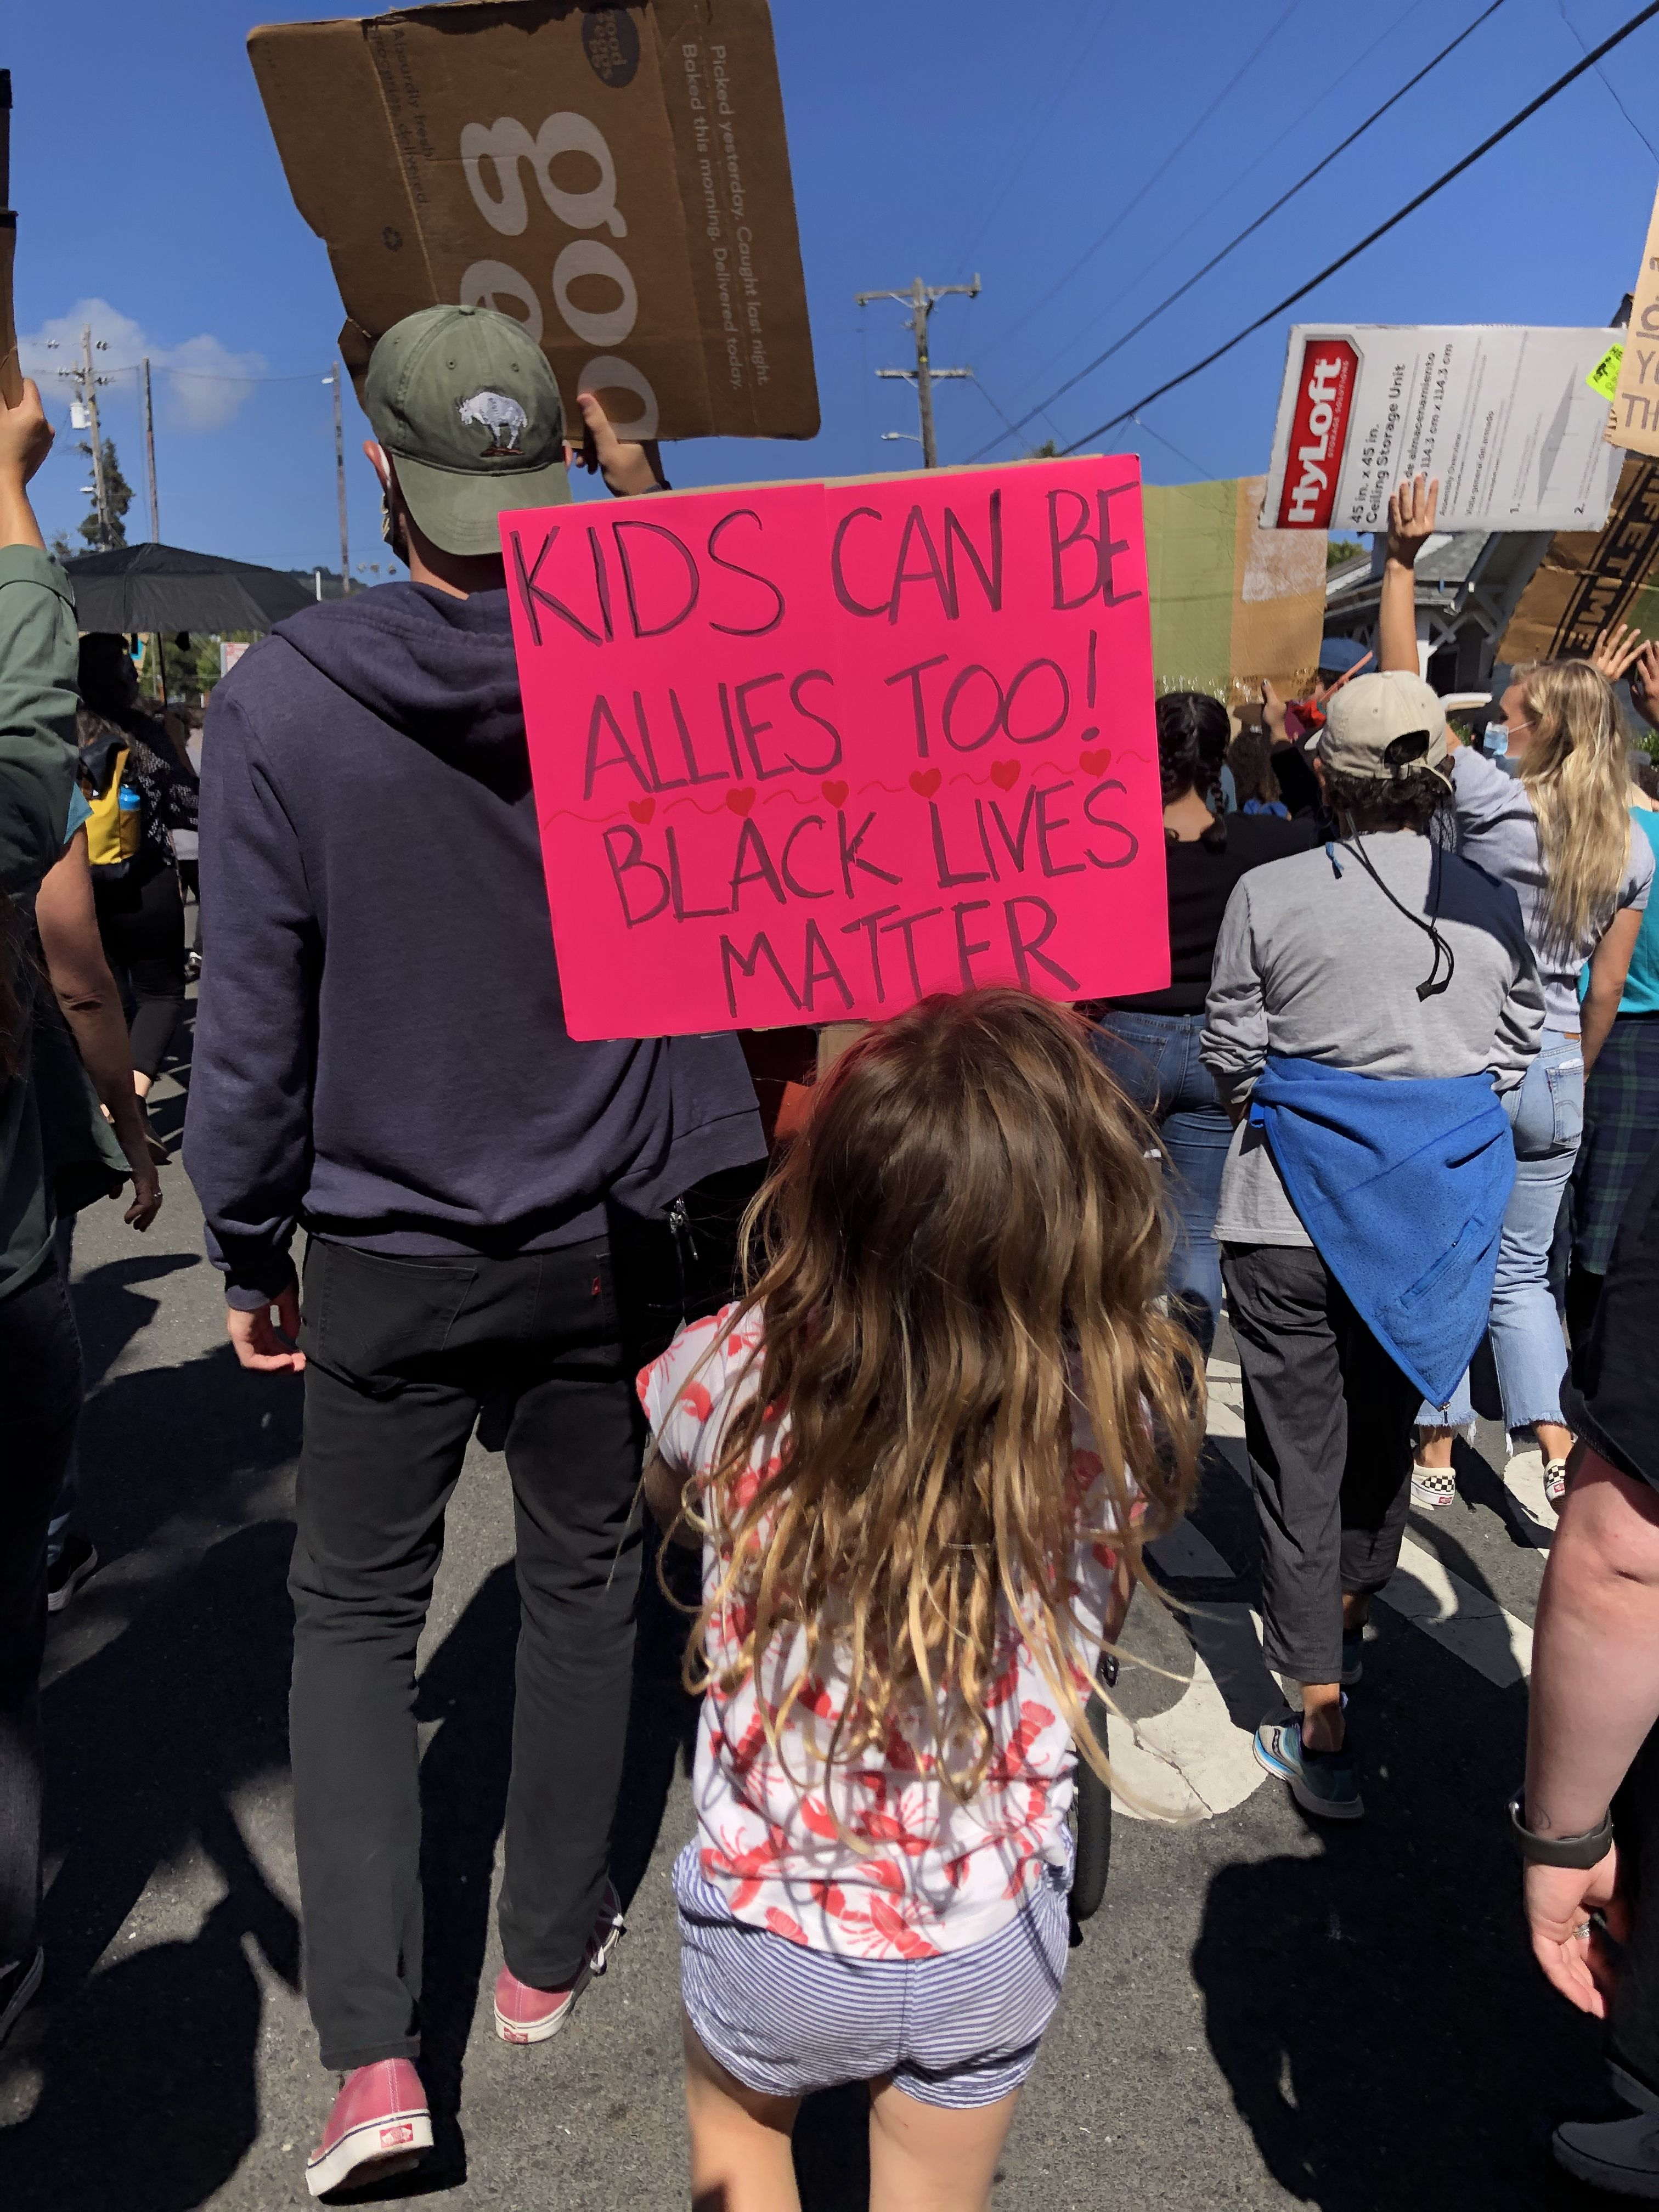 Kids Can Be Allies Too In 2020 Black Lives Matter Black Lives Matter Protest Black Lives